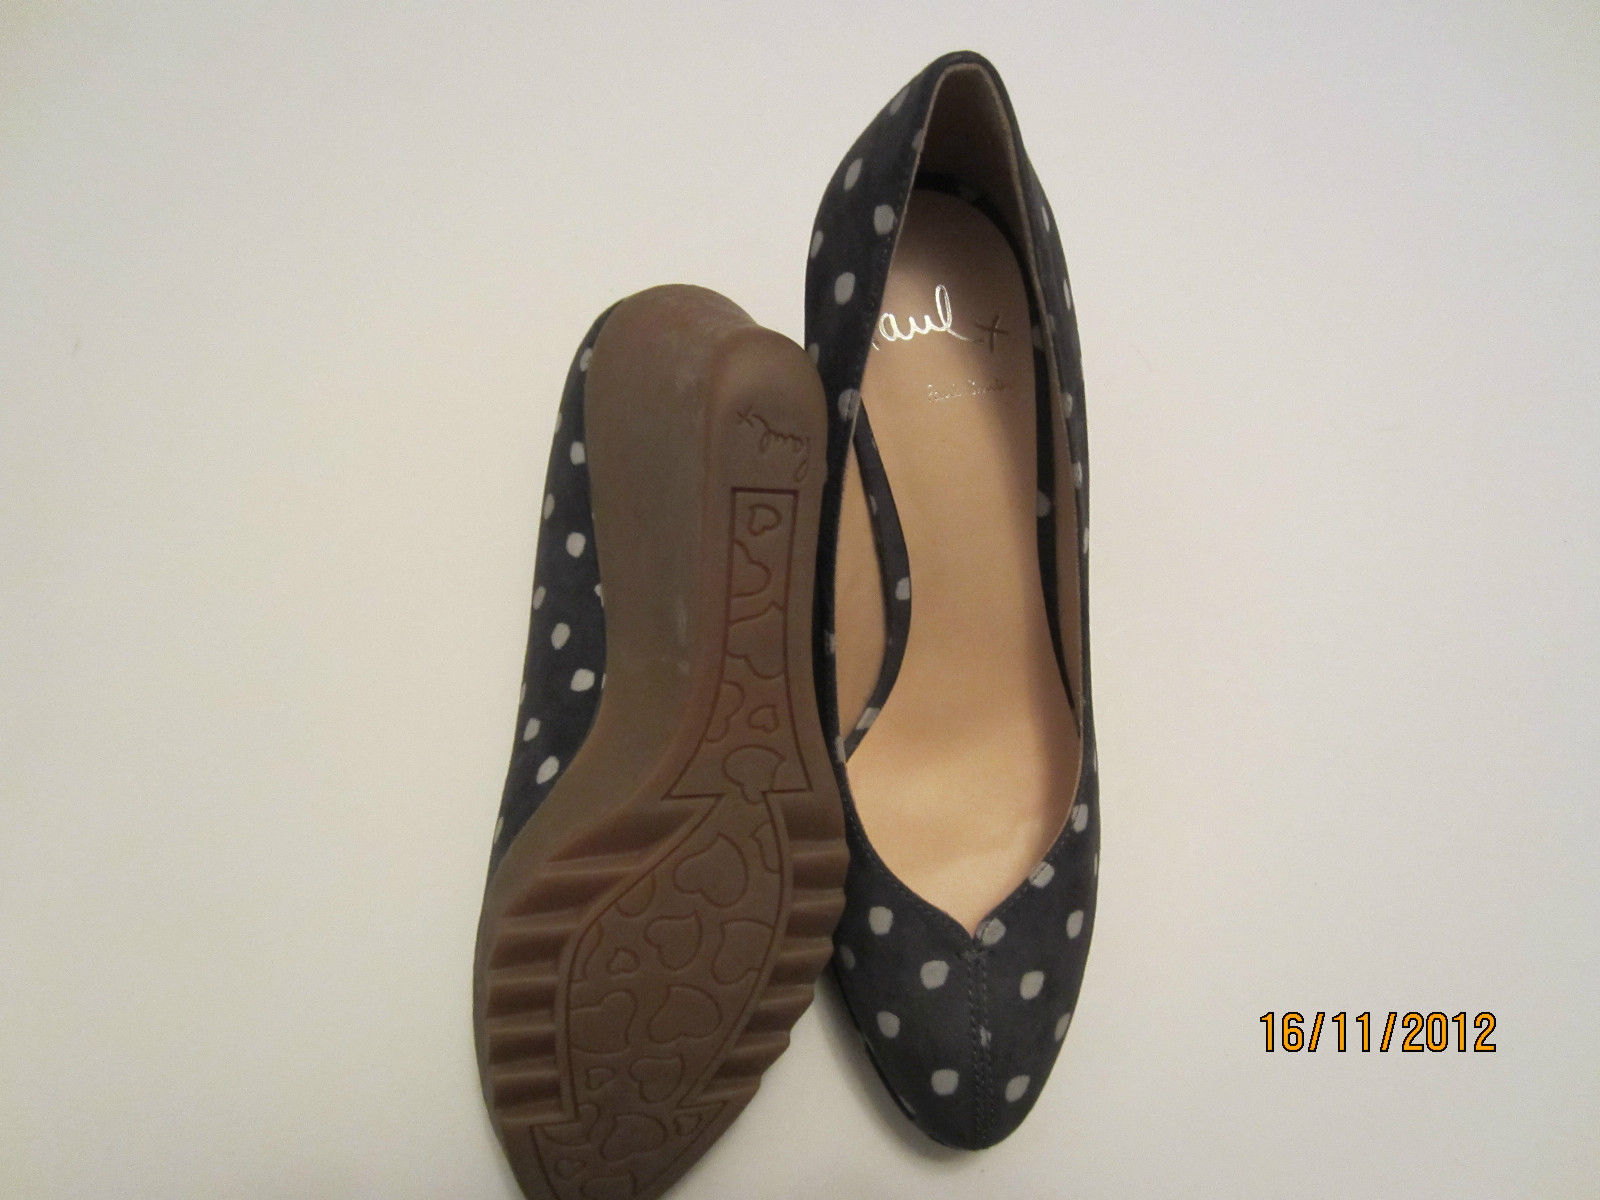 paul smith keilabsatz schuhe mit grau veloursleder polka detail ober gr e uk4 ebay. Black Bedroom Furniture Sets. Home Design Ideas